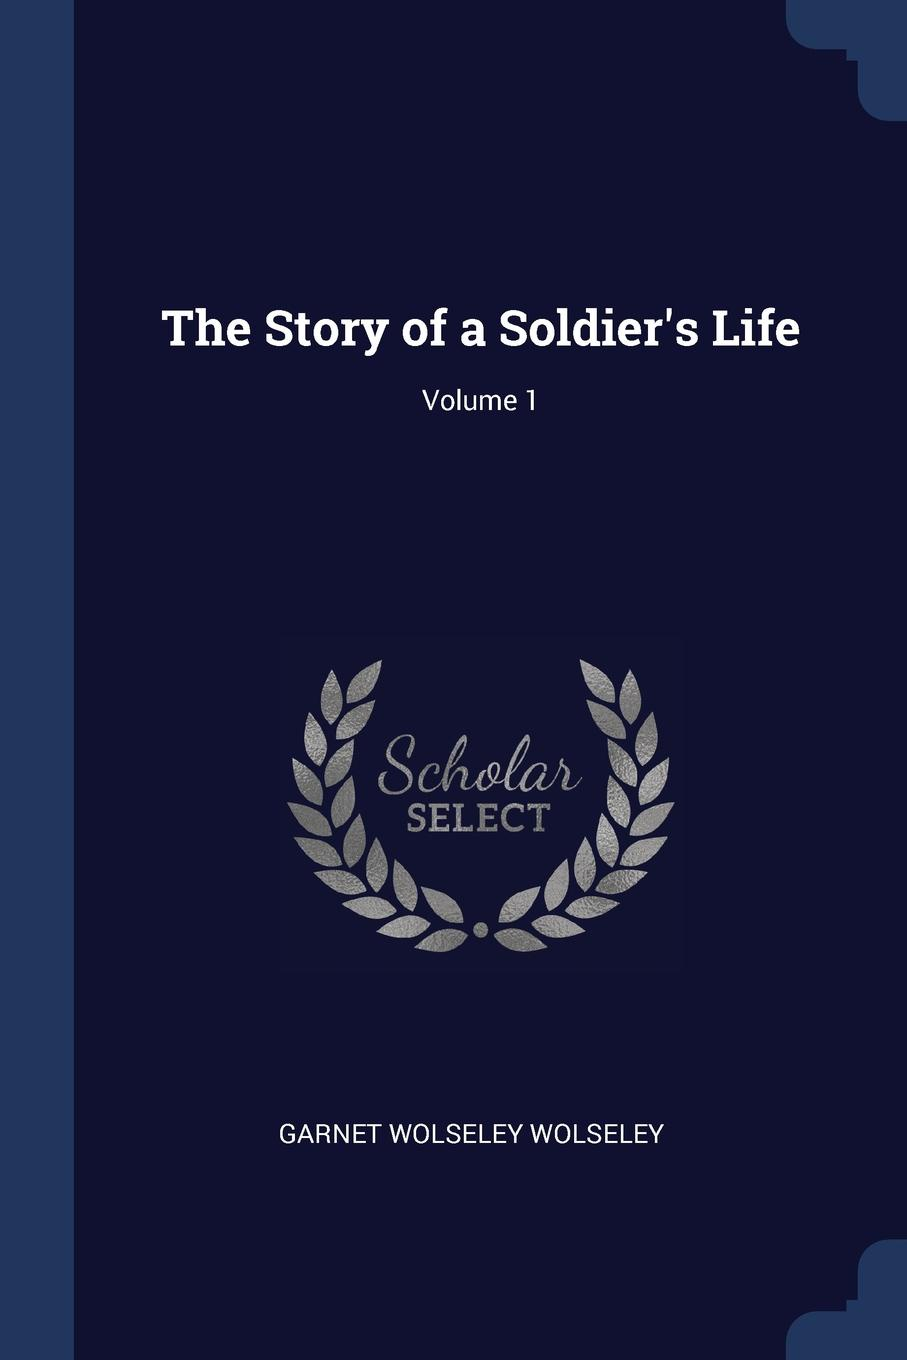 The Story of a Soldier.s Life; Volume 1. Garnet Wolseley Wolseley